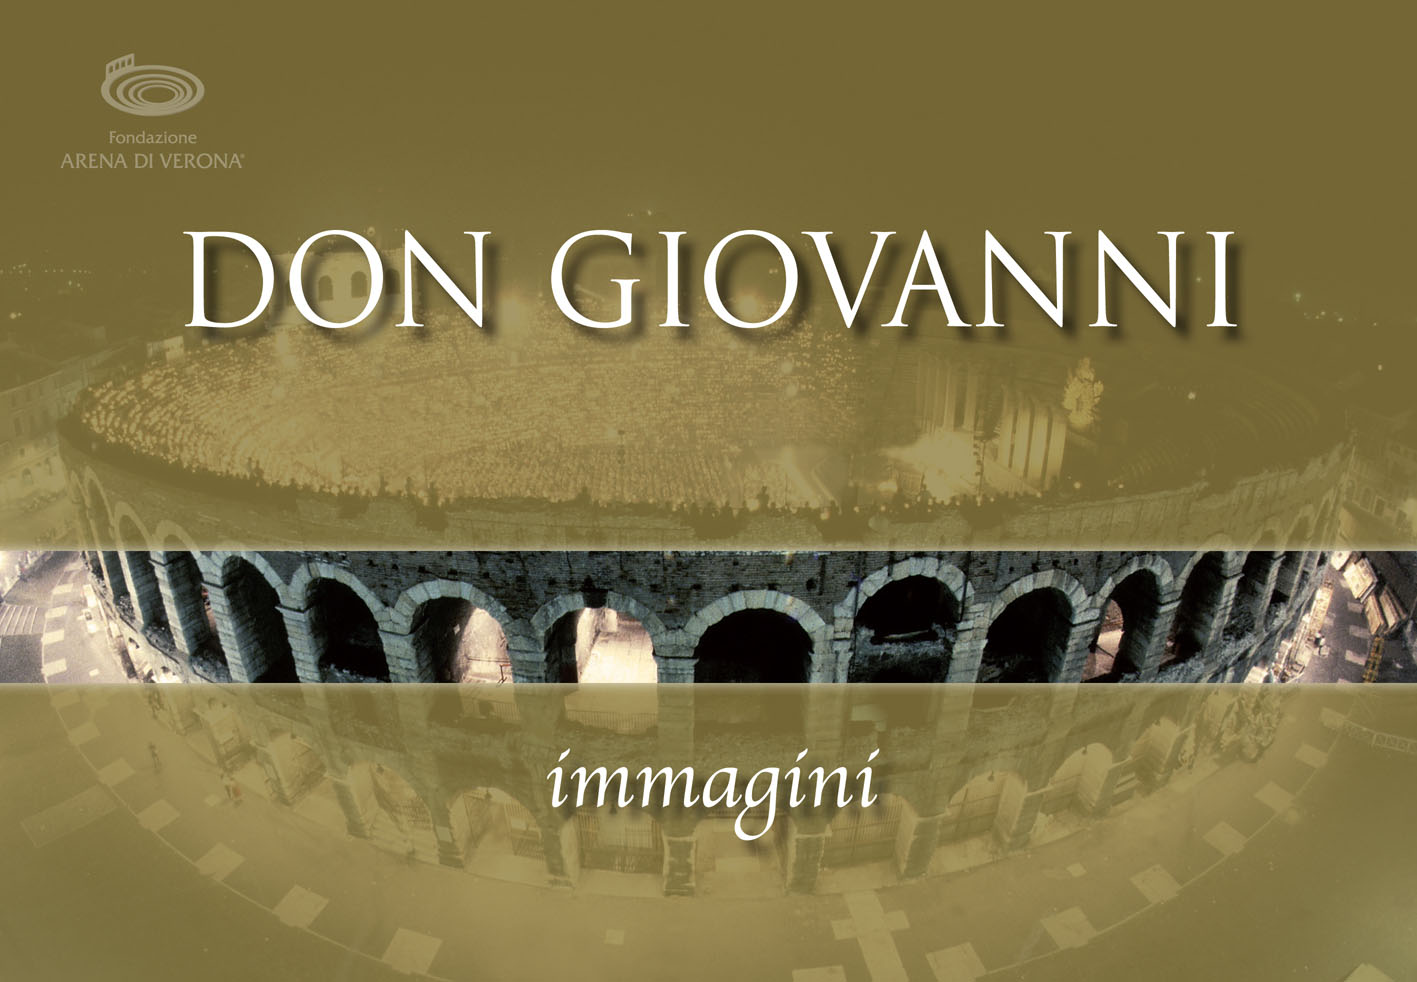 Photo Don Giovanni Ed. 2012